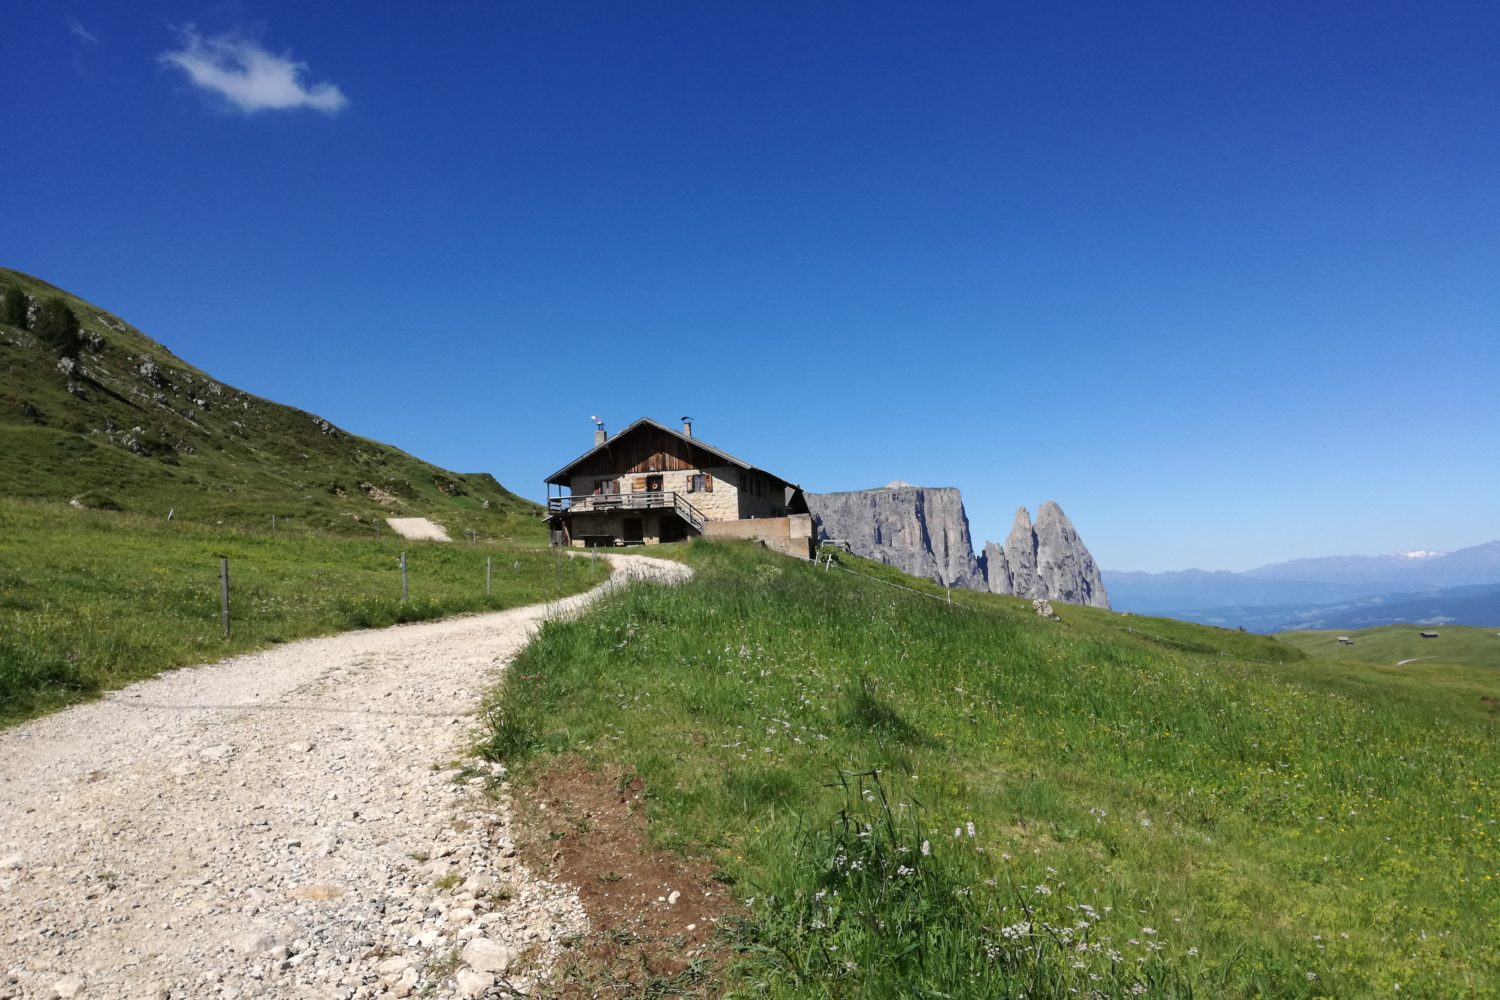 Following a country path on the Dolomites self guided hiking tour